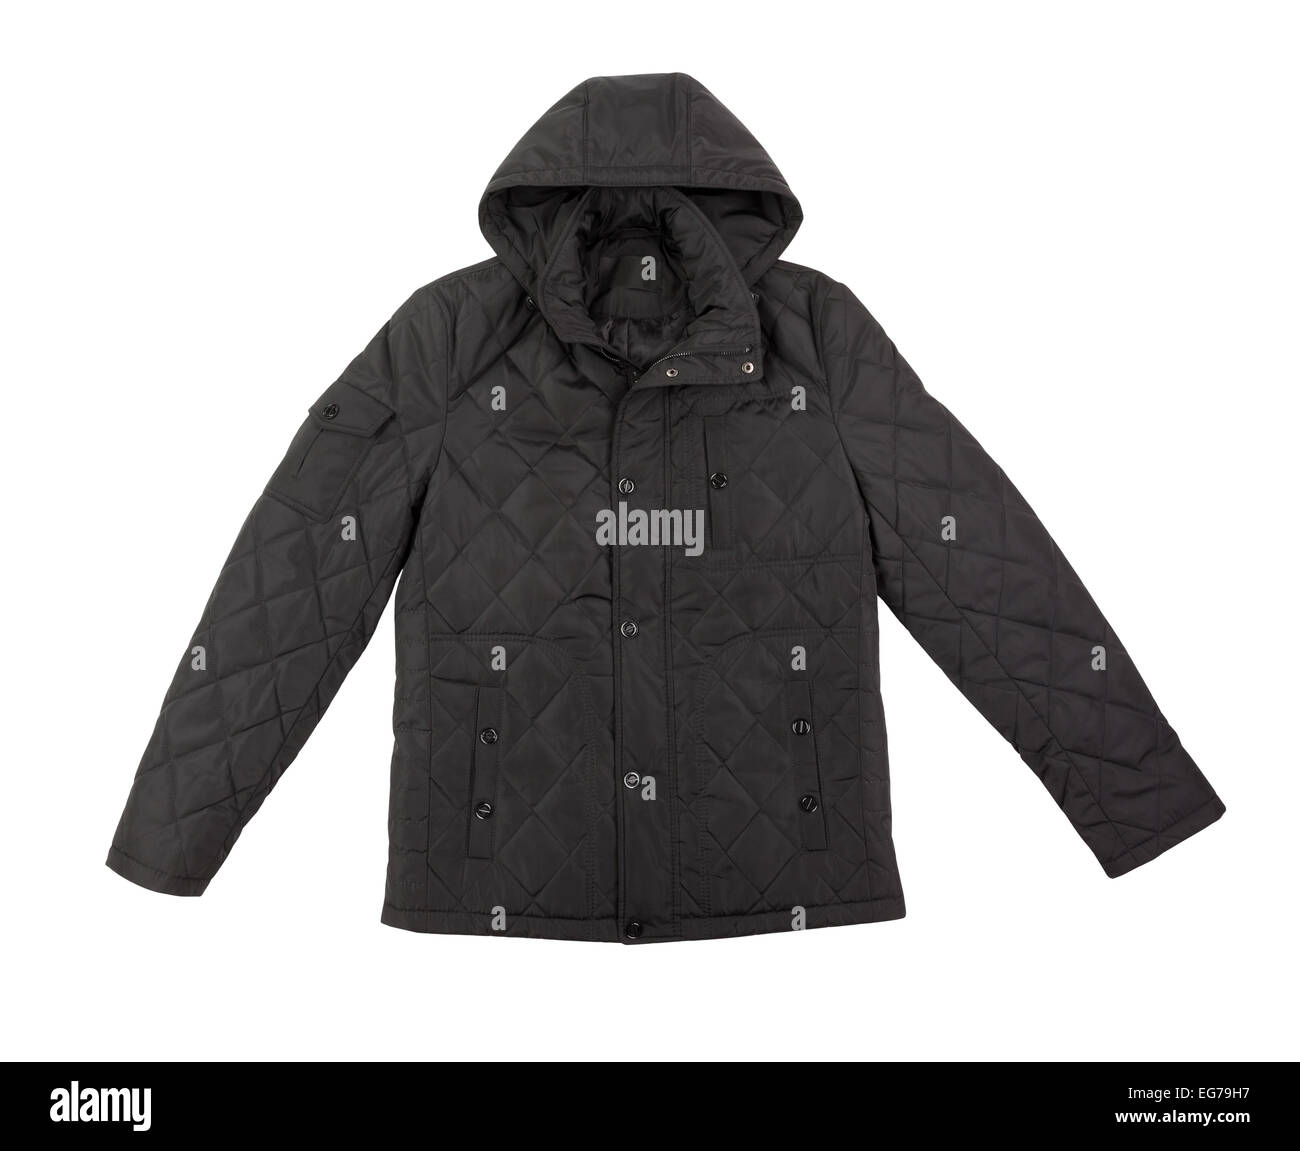 jacket isolated - Stock Image